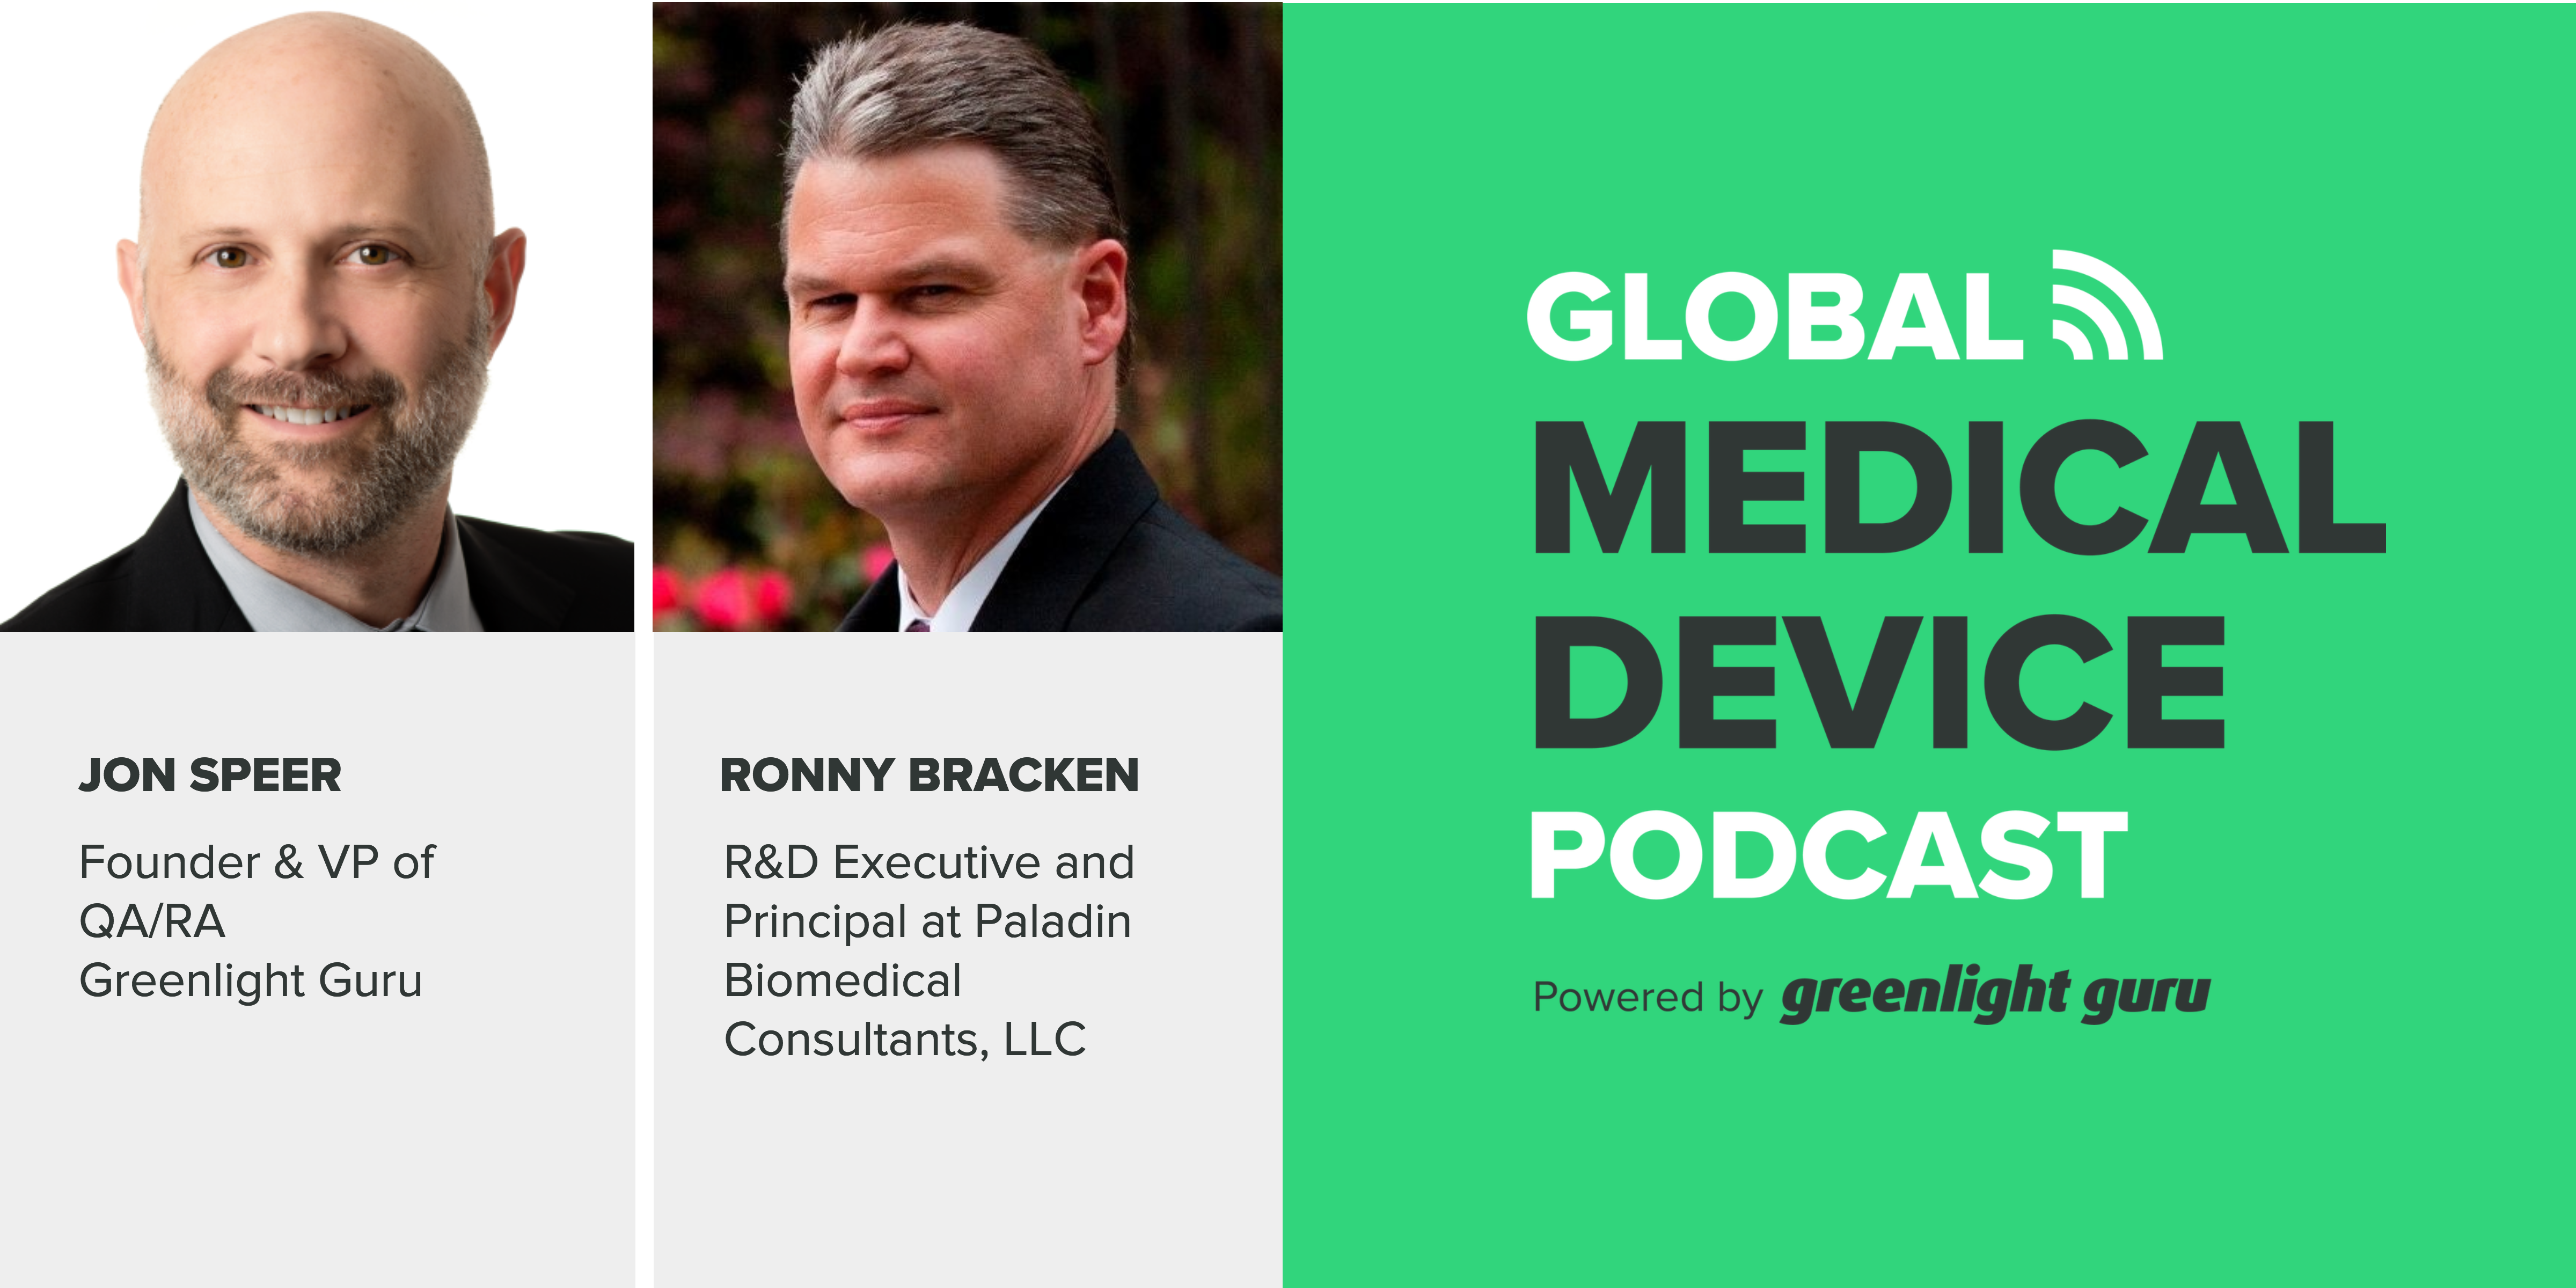 podcast_ronny bracken